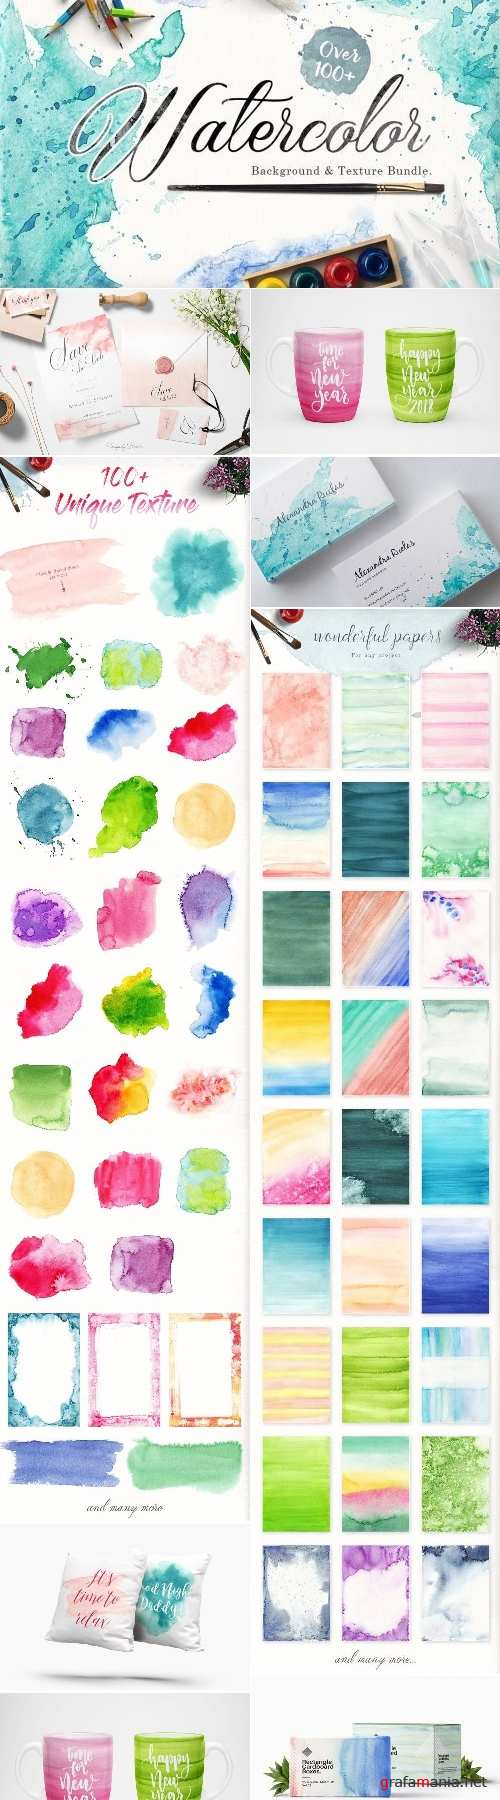 Watercolor Background & Textures - 2433654